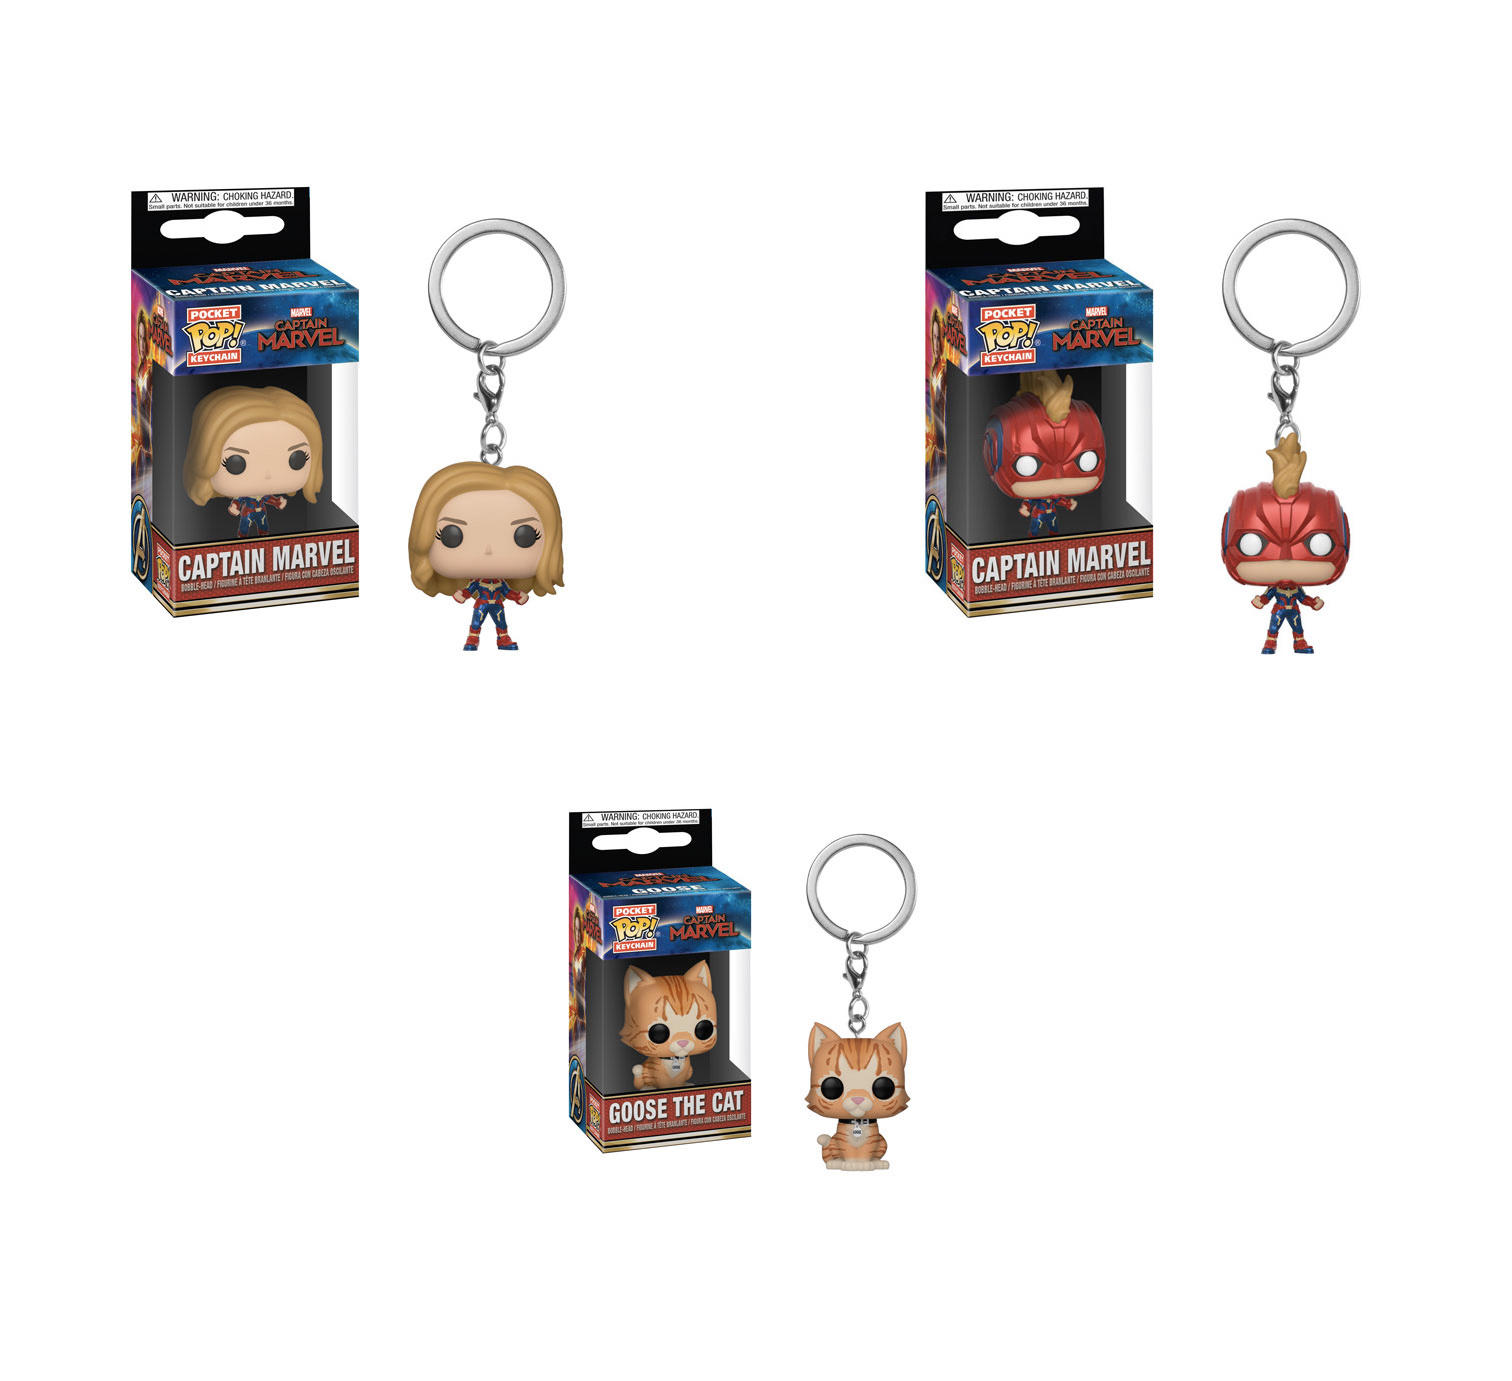 Pop! keychains